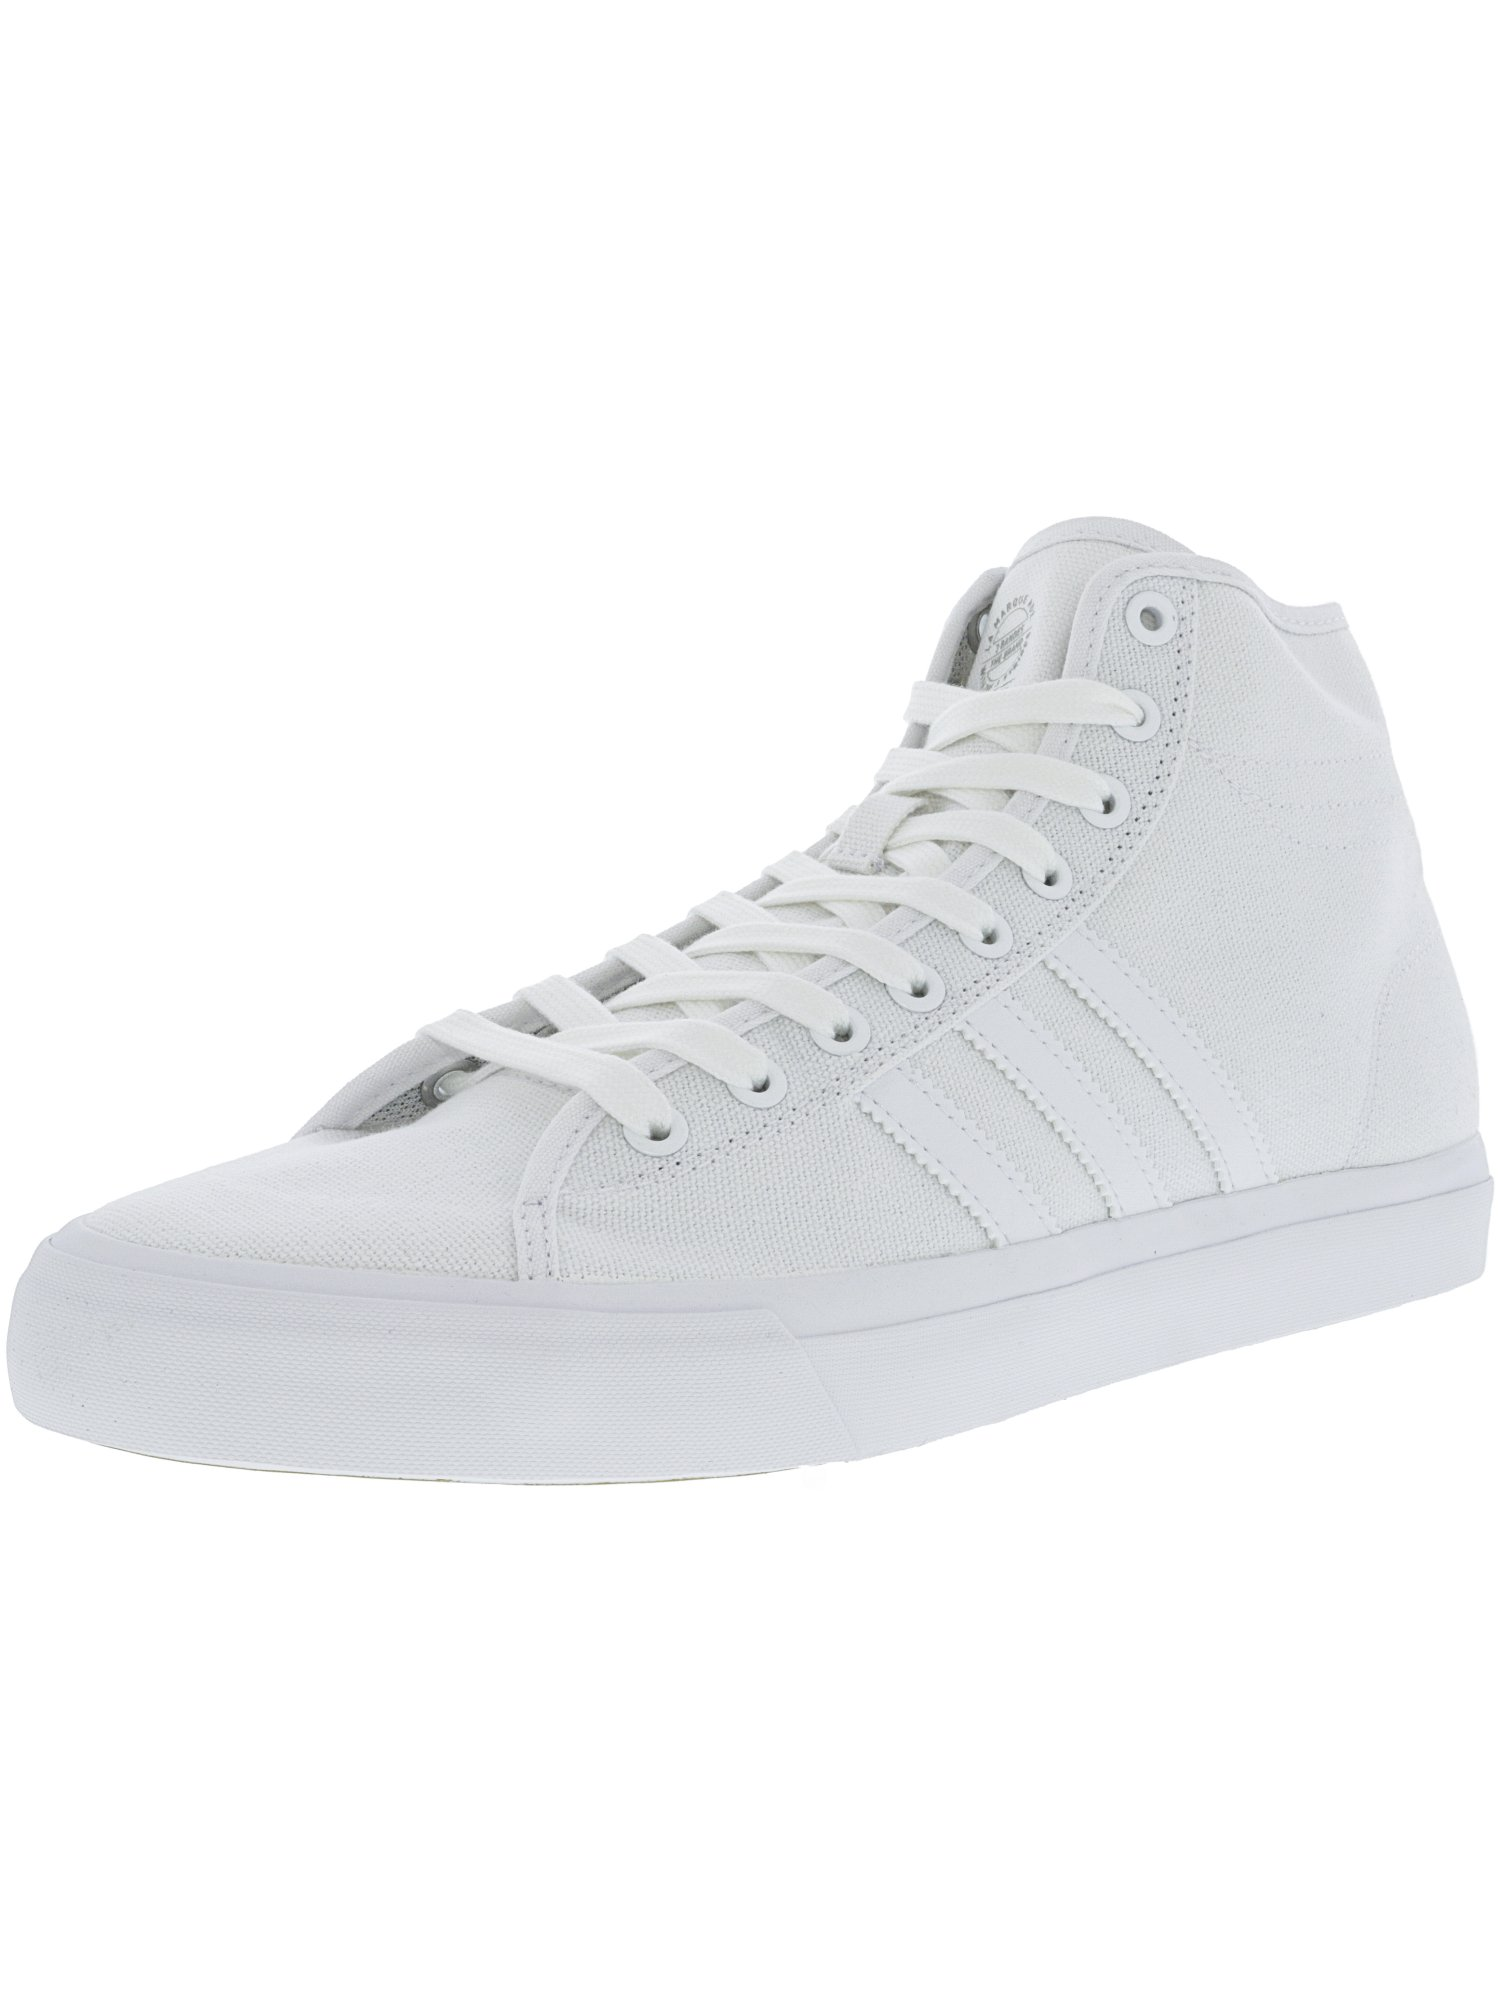 adidas Originals Mens Matchcourt High RX Shoes White white white 12 M US.  About this product. Picture 1 of 2  Picture 2 of 2 06ac9a8a7